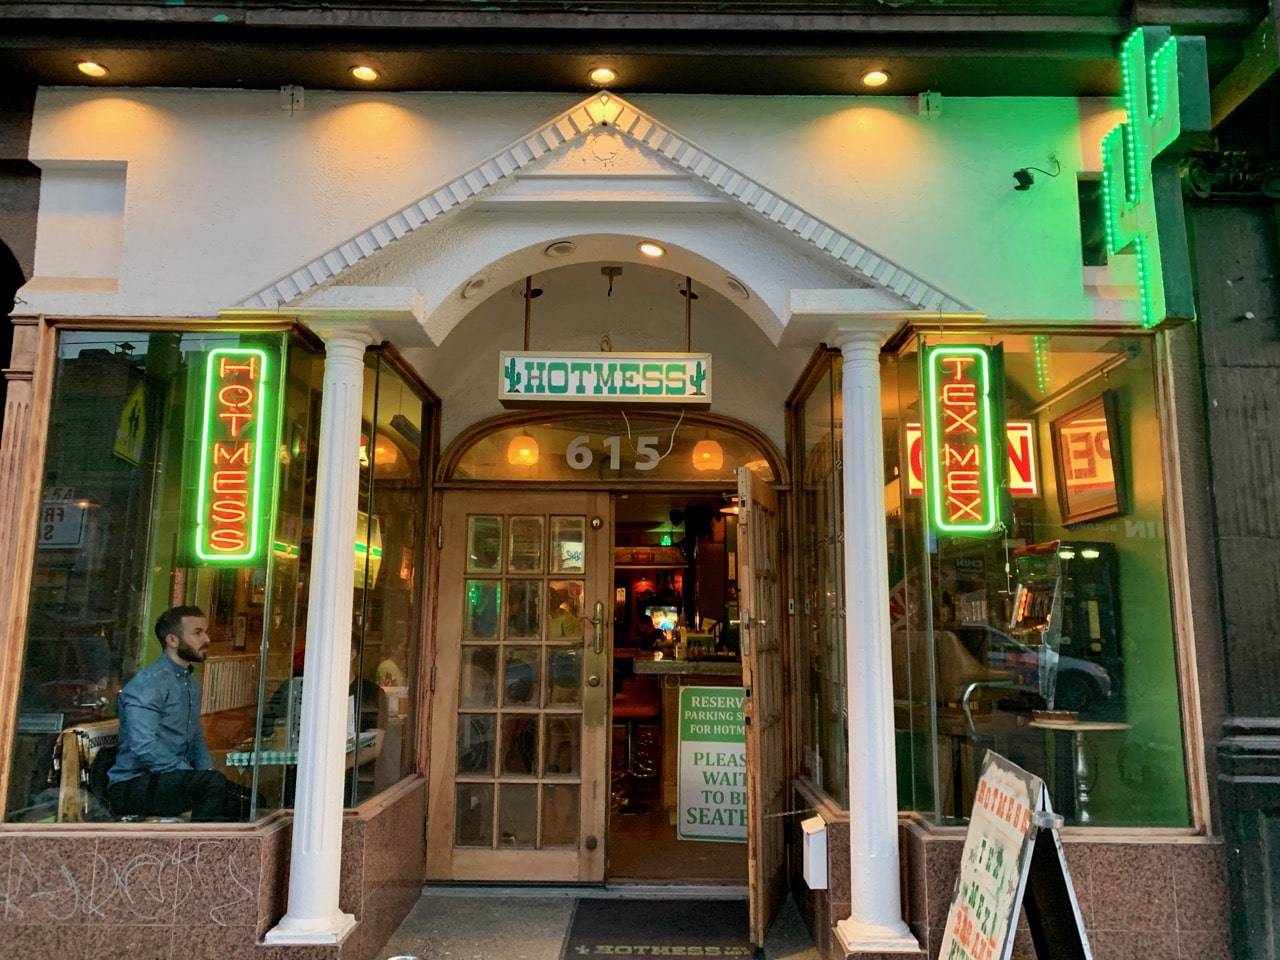 Hotmess Tex Mex is located on College Street in Little Italy.